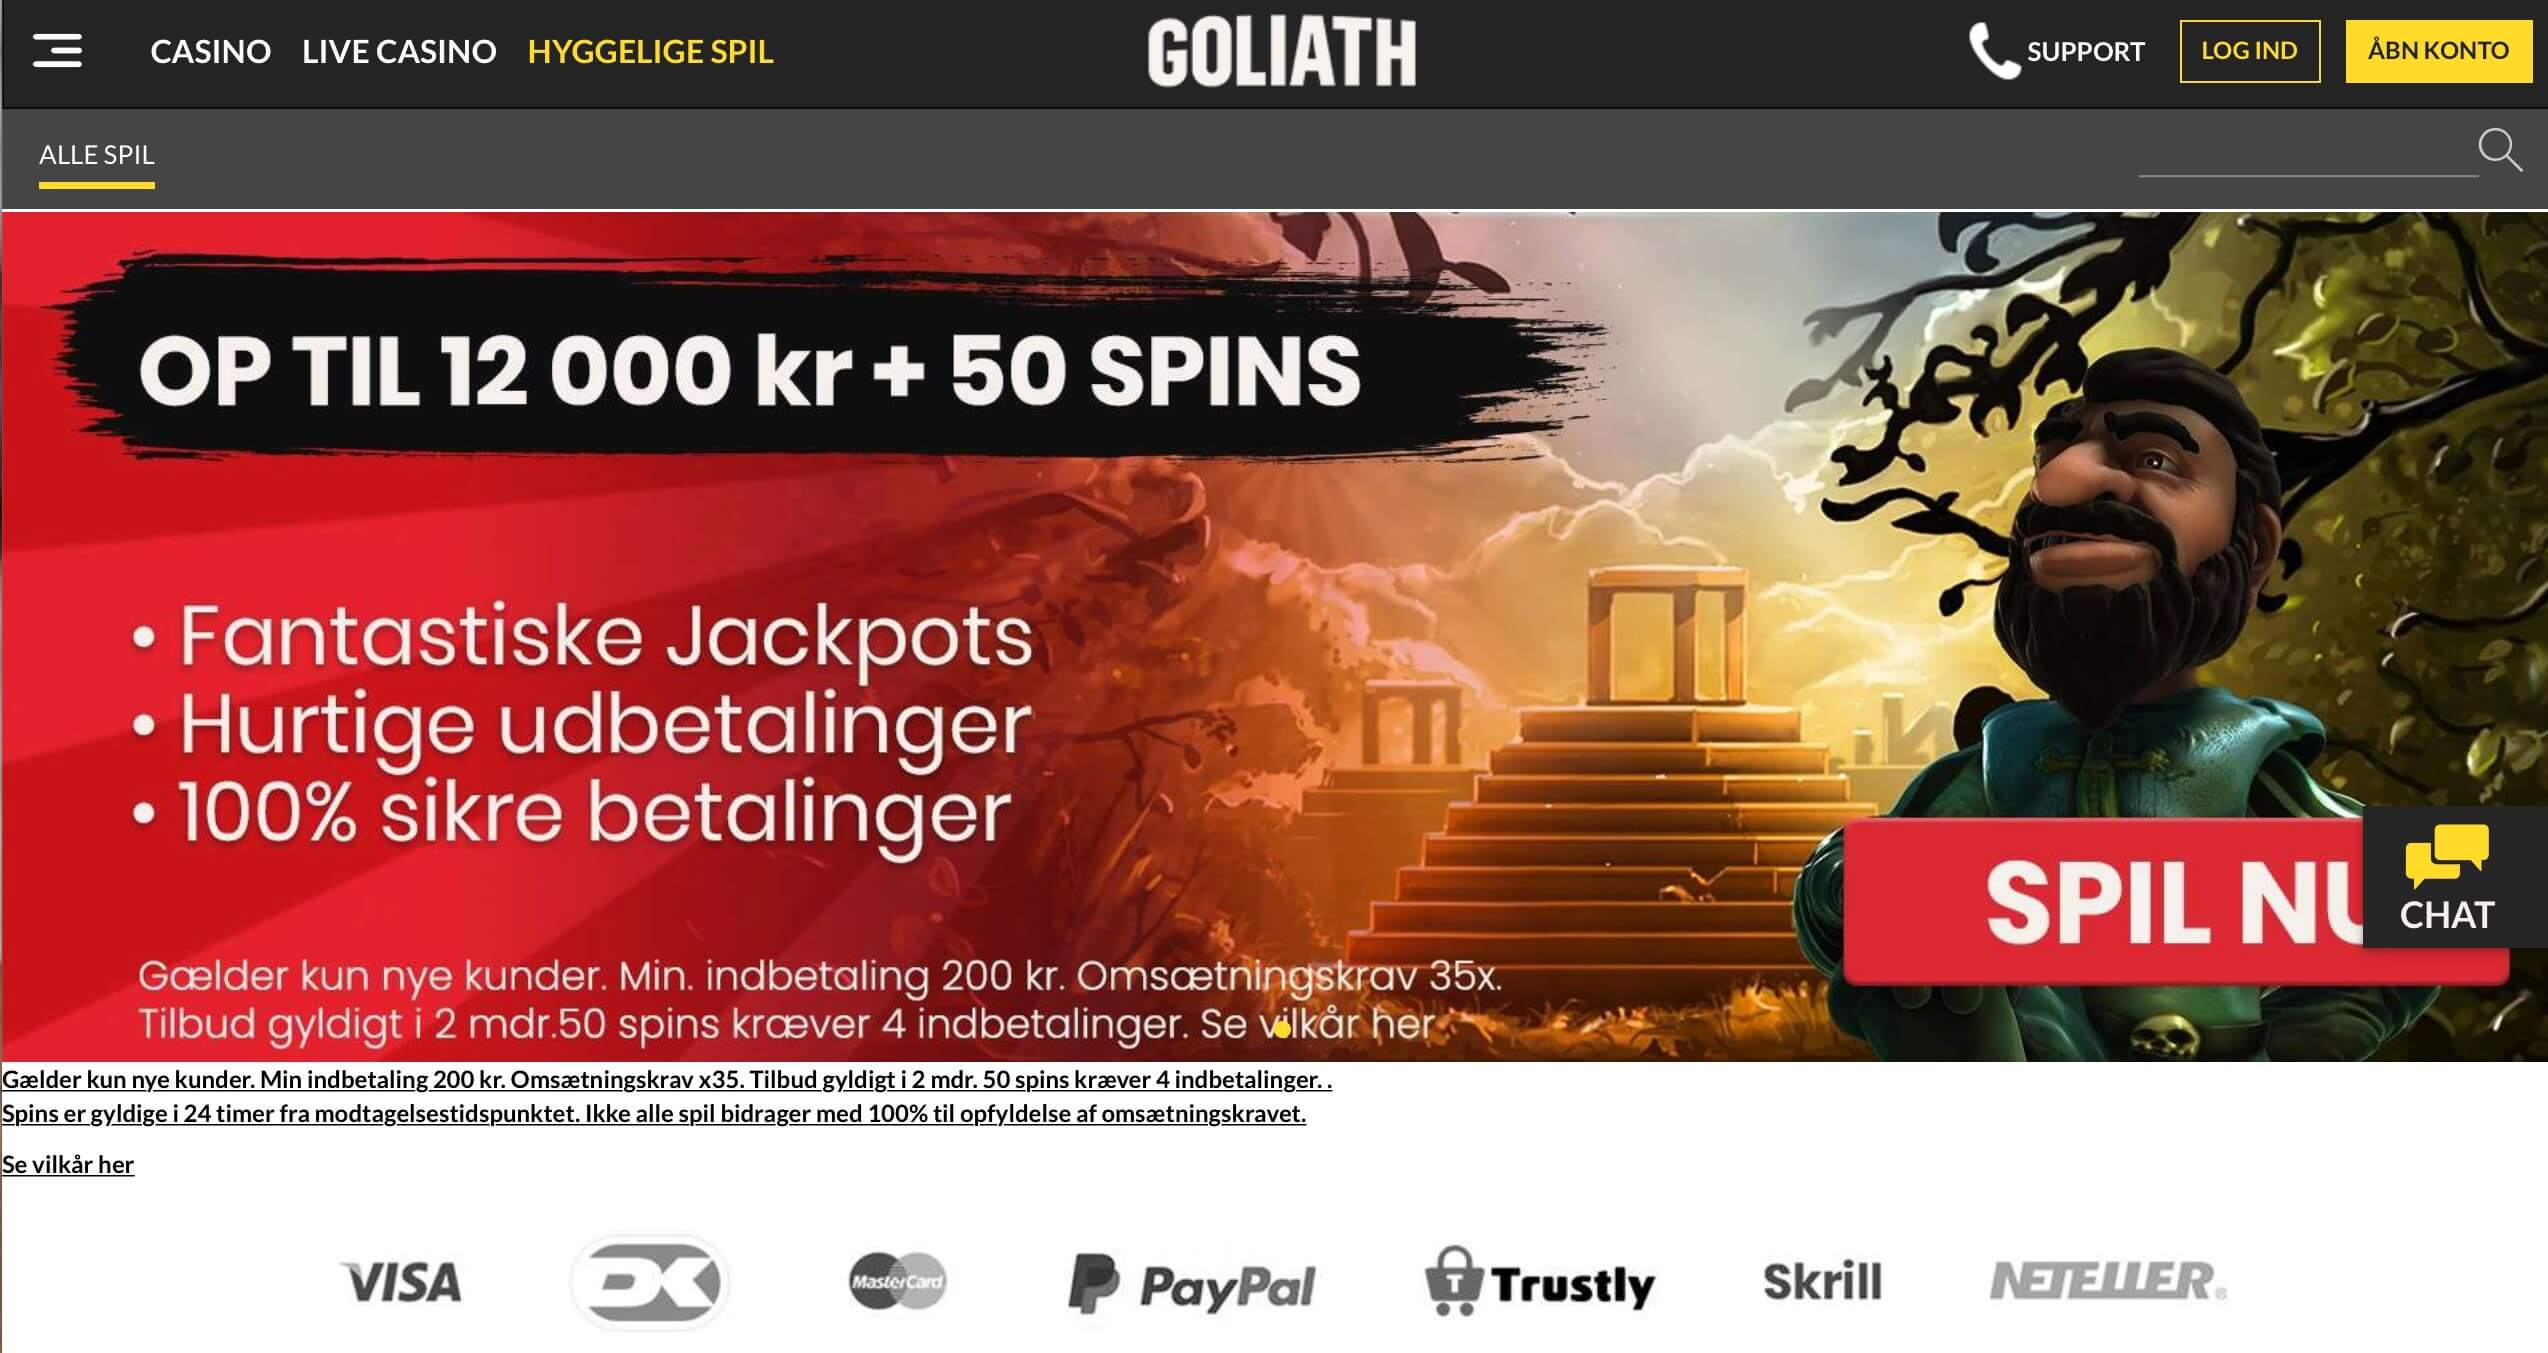 Goliath casino bonuskode